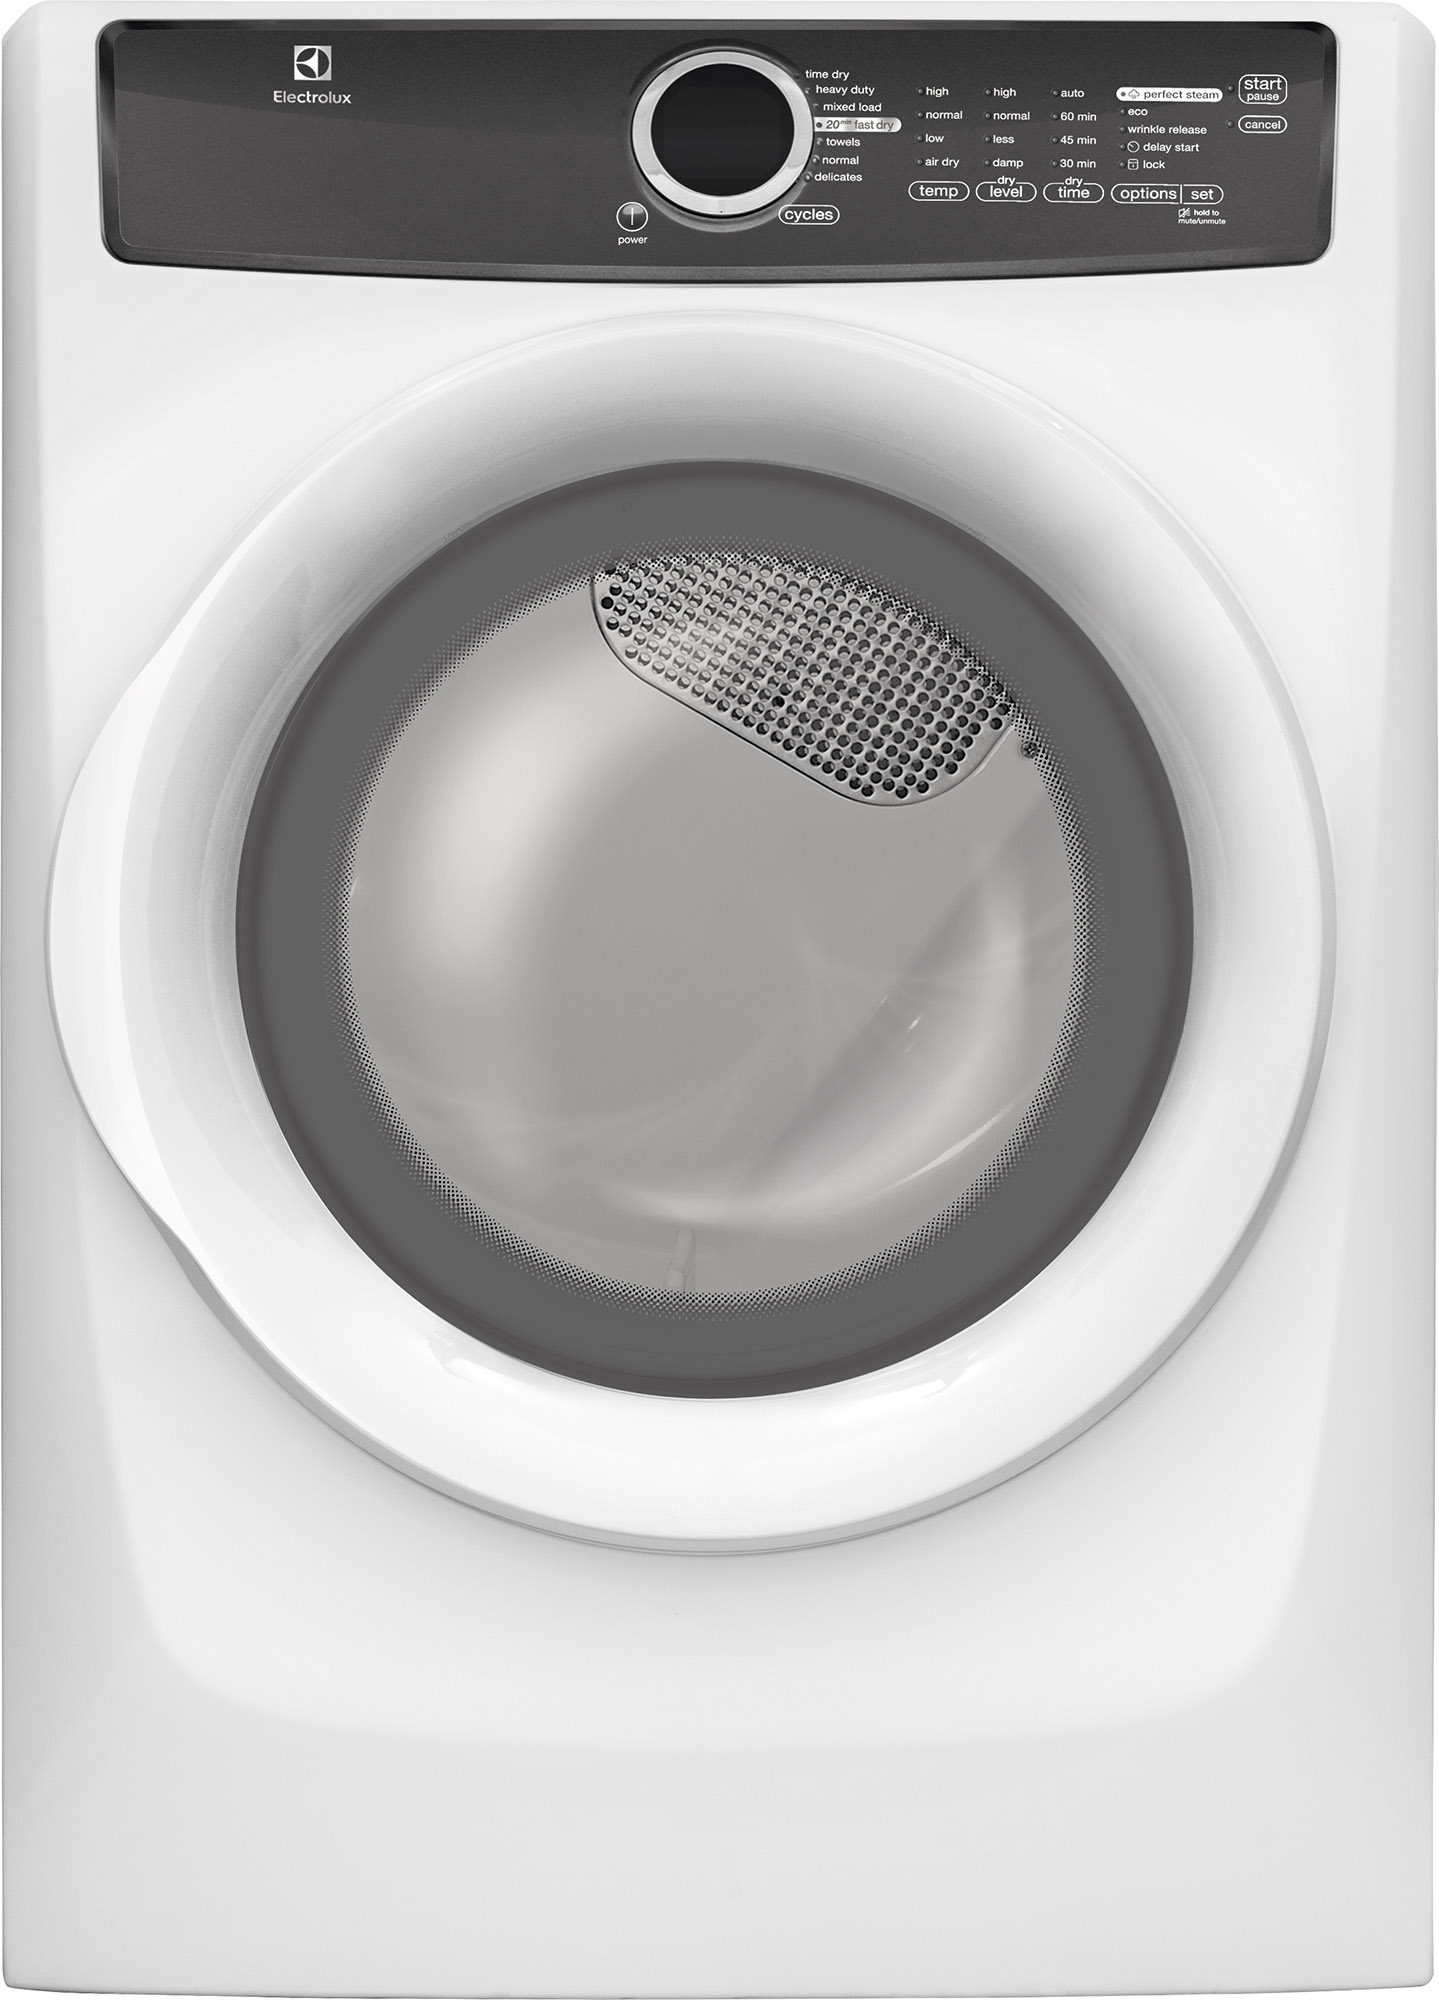 reduce feature or w your pedestal prod washer spin with add june convenient drawer elevates integrated white that storage area dryers a electrolux to the dryer laundry this